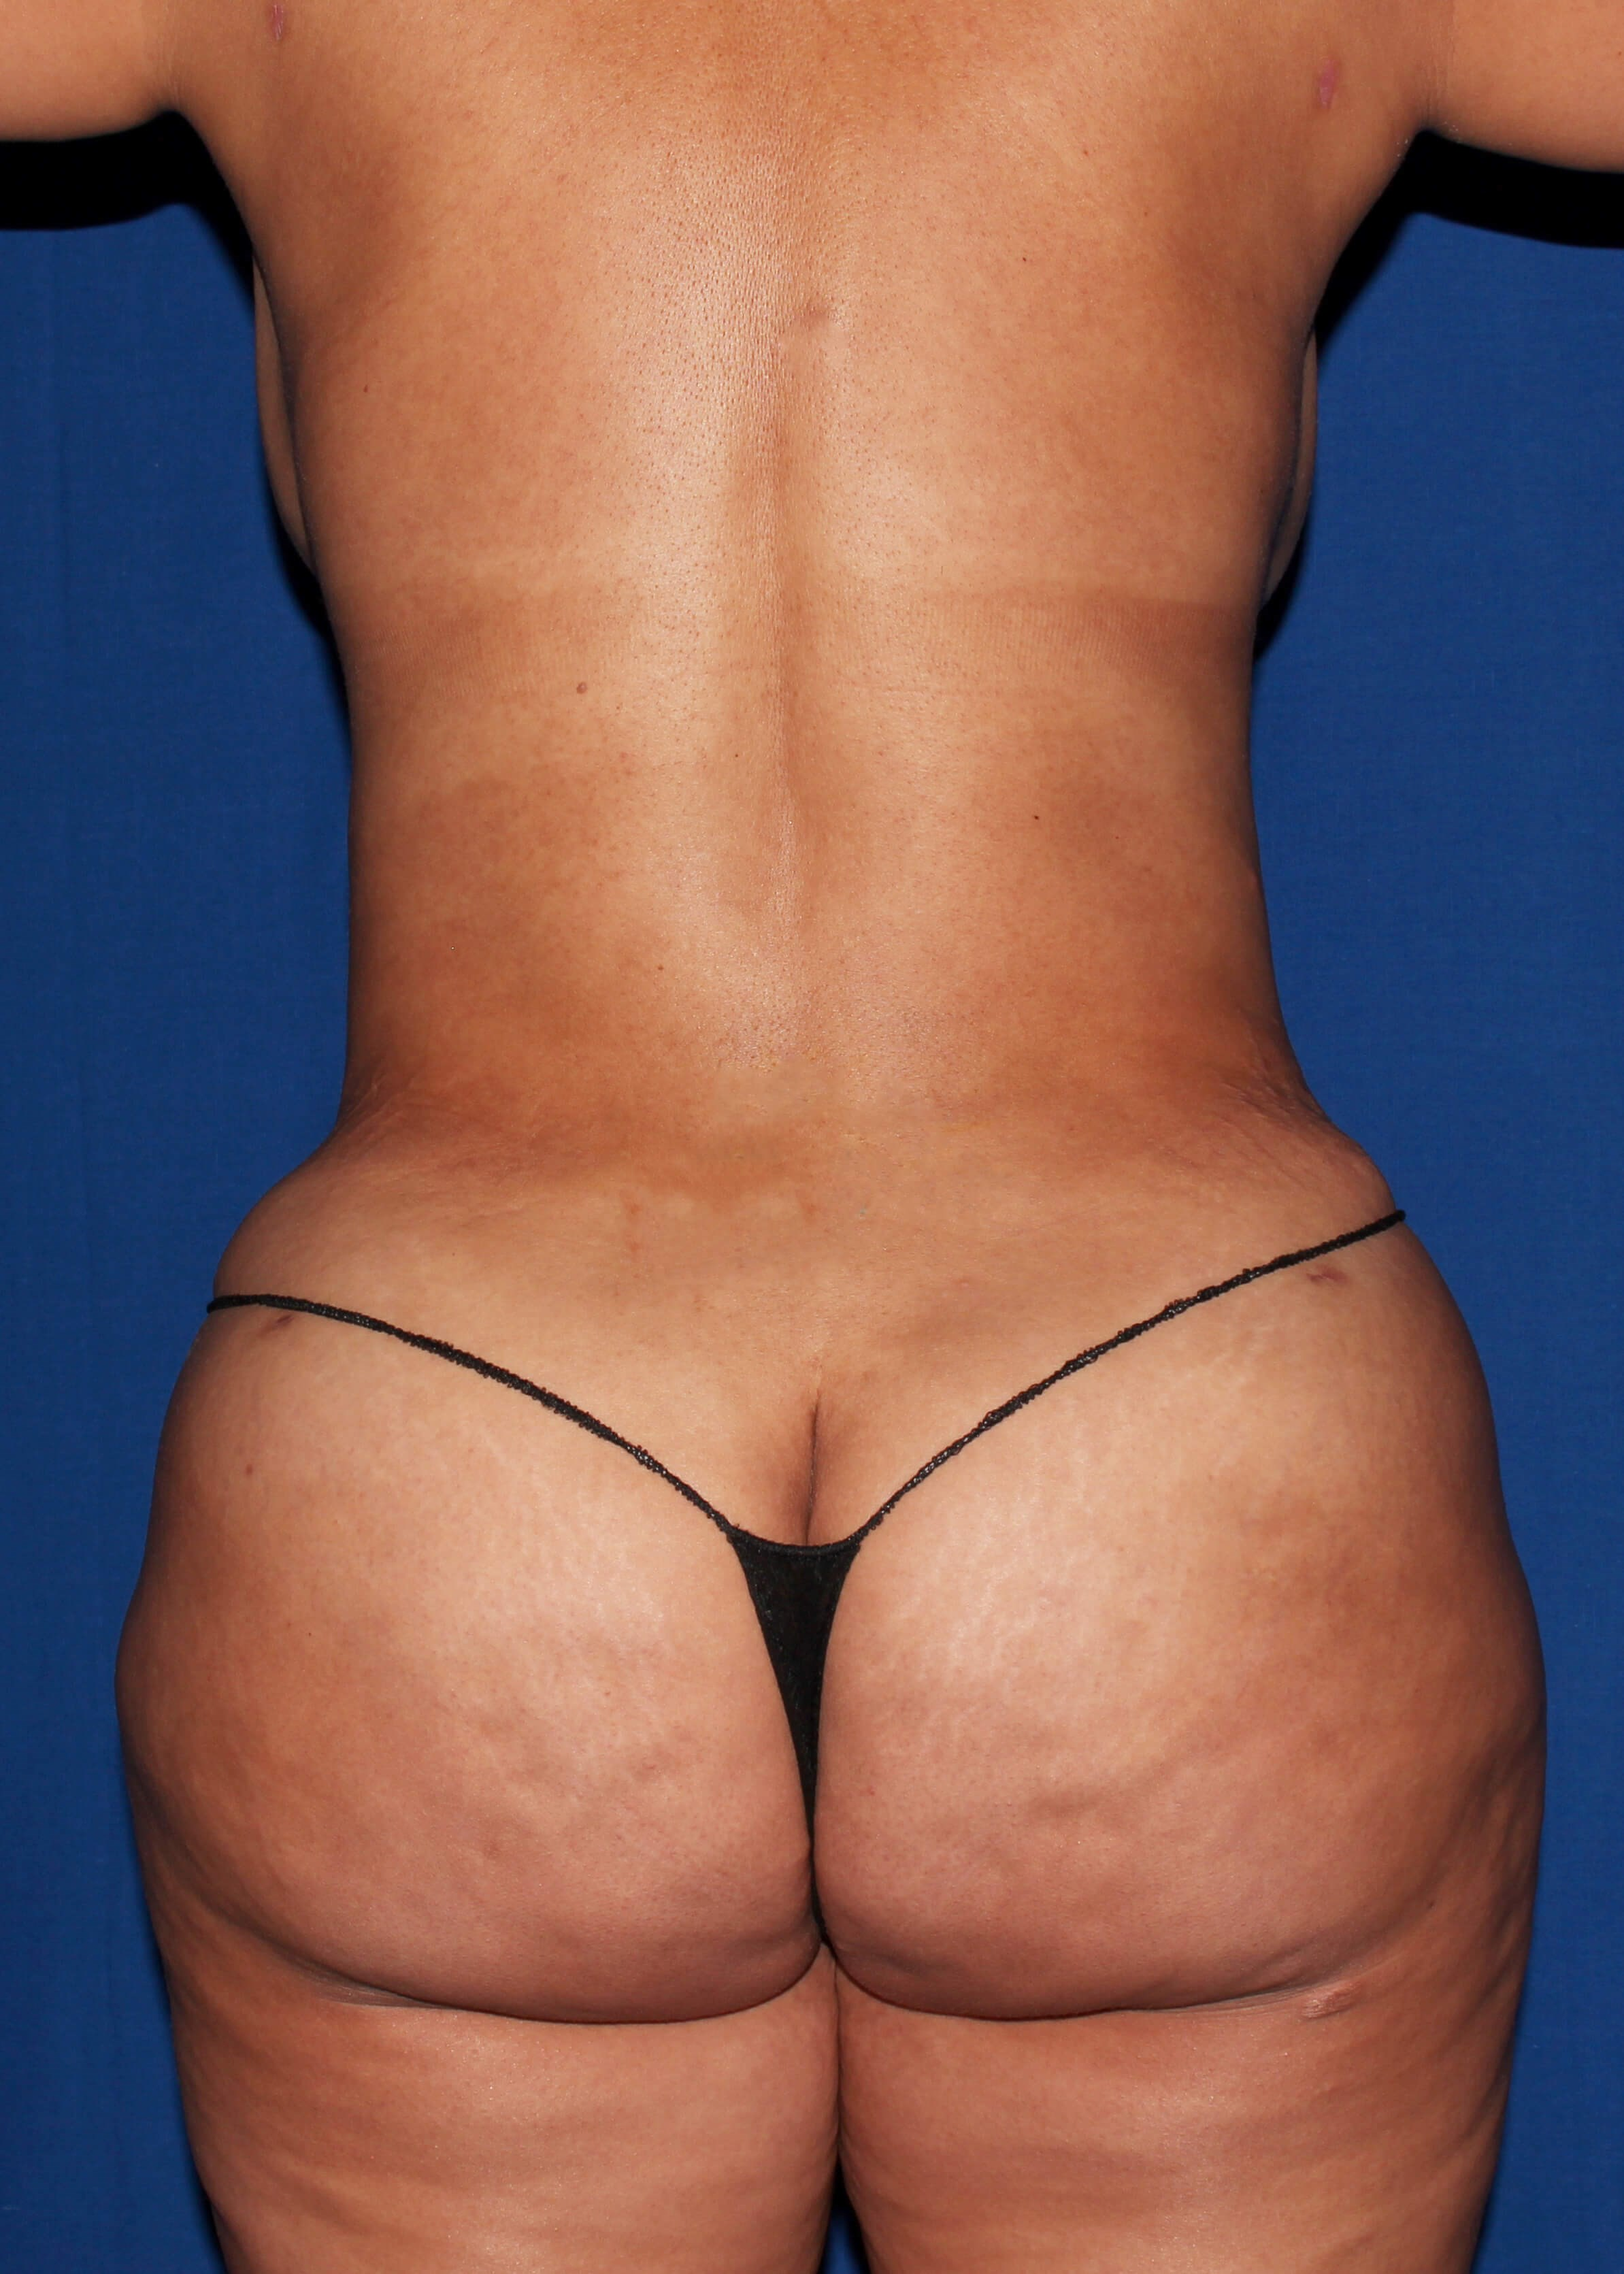 After Tummy Tuck - Back View